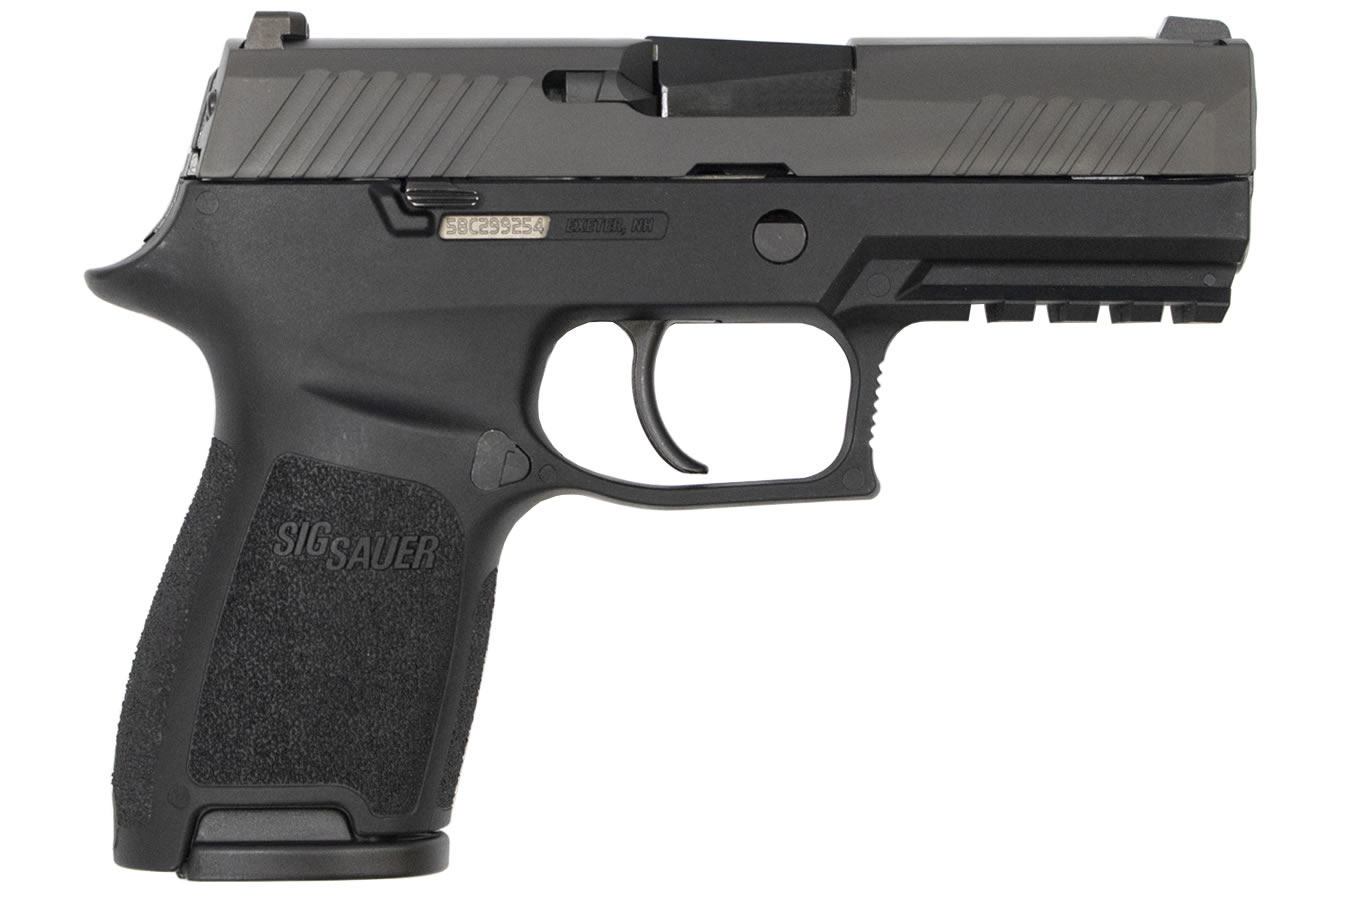 P320 COMPACT 45 ACP WITH NIGHT SIGHTS (LE)